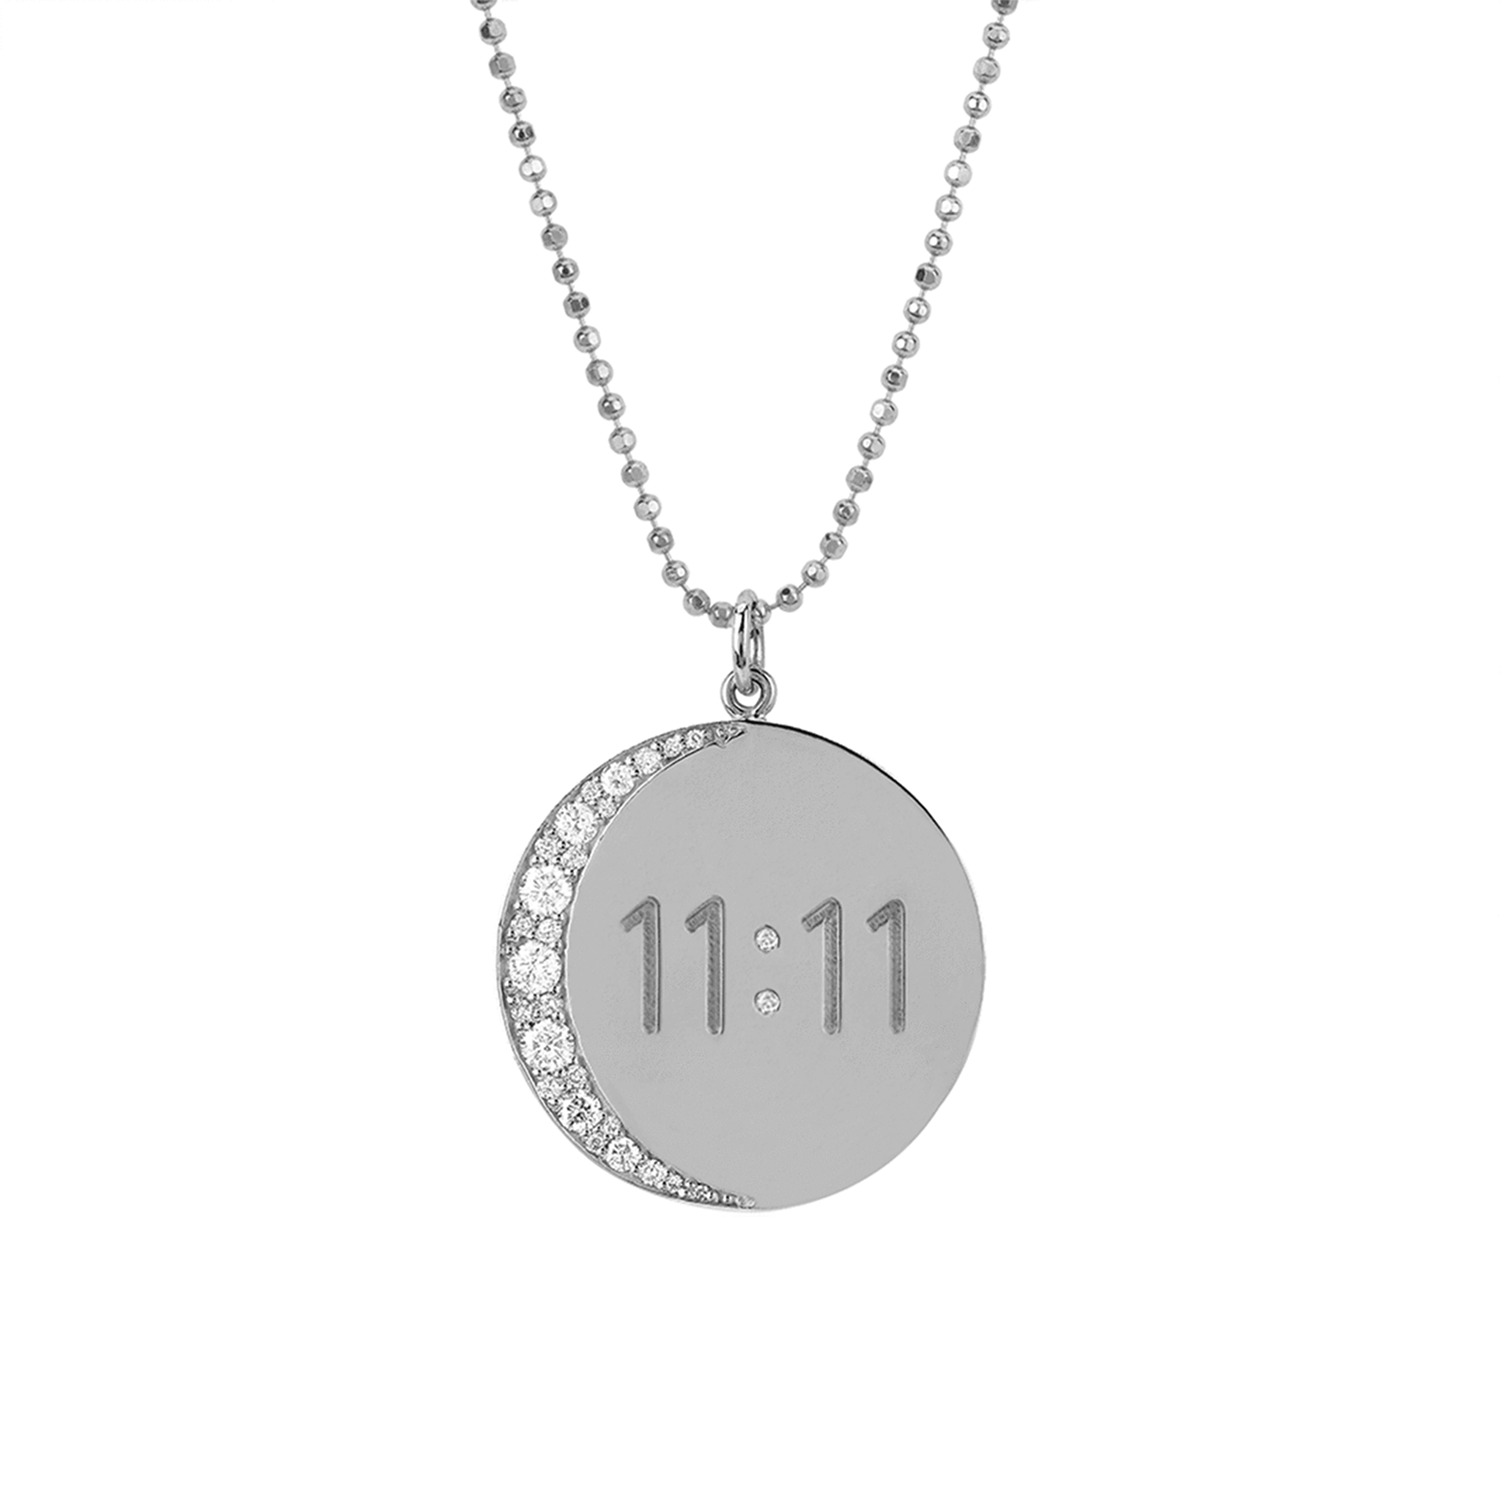 Medium 11:11 Moon Necklace